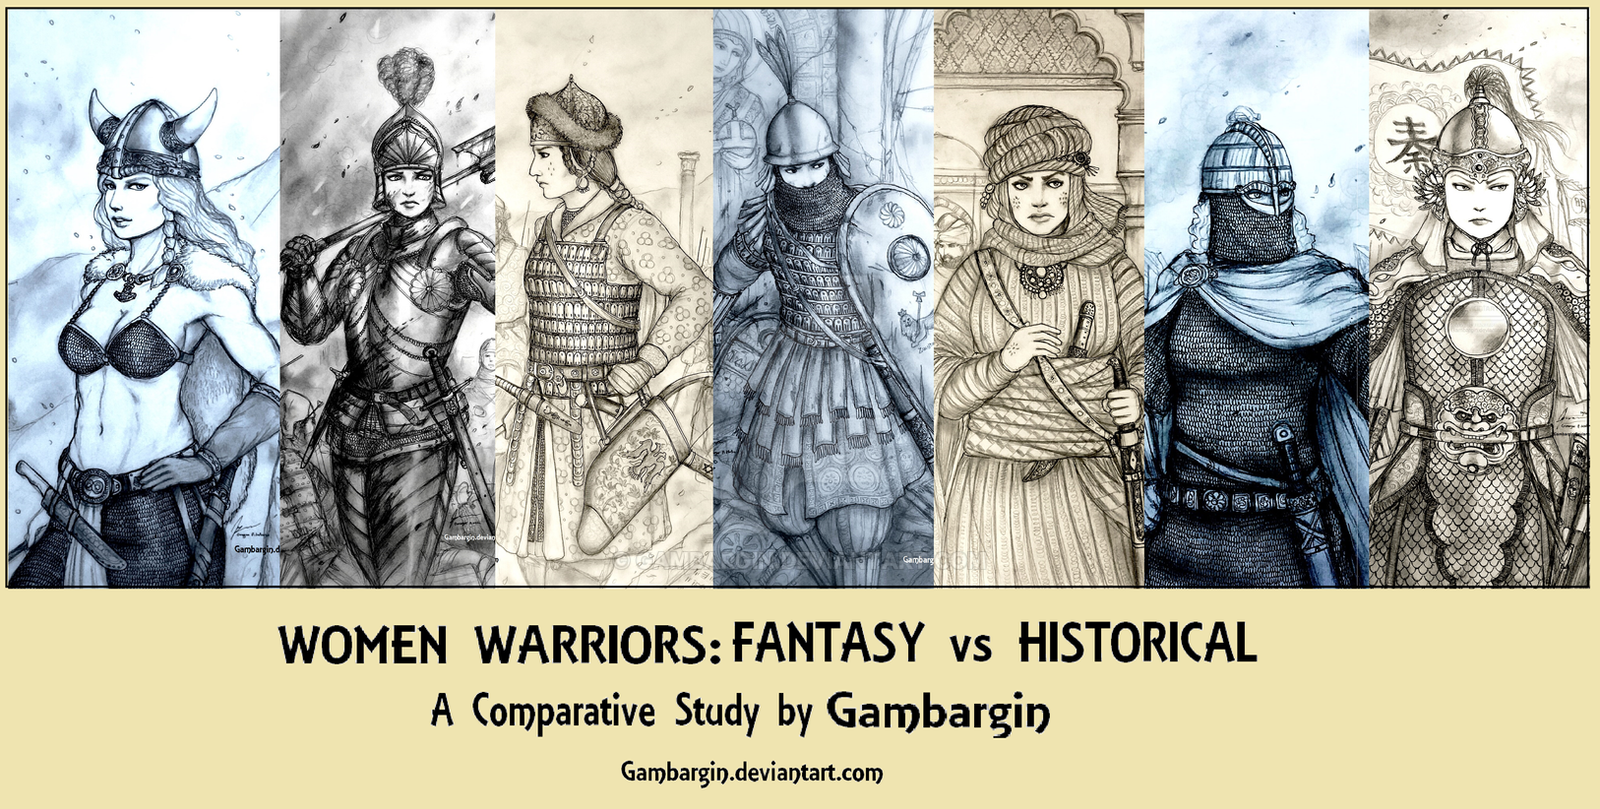 essay women warriors fantasy vs historical by gambargin on essay women warriors fantasy vs historical by gambargin